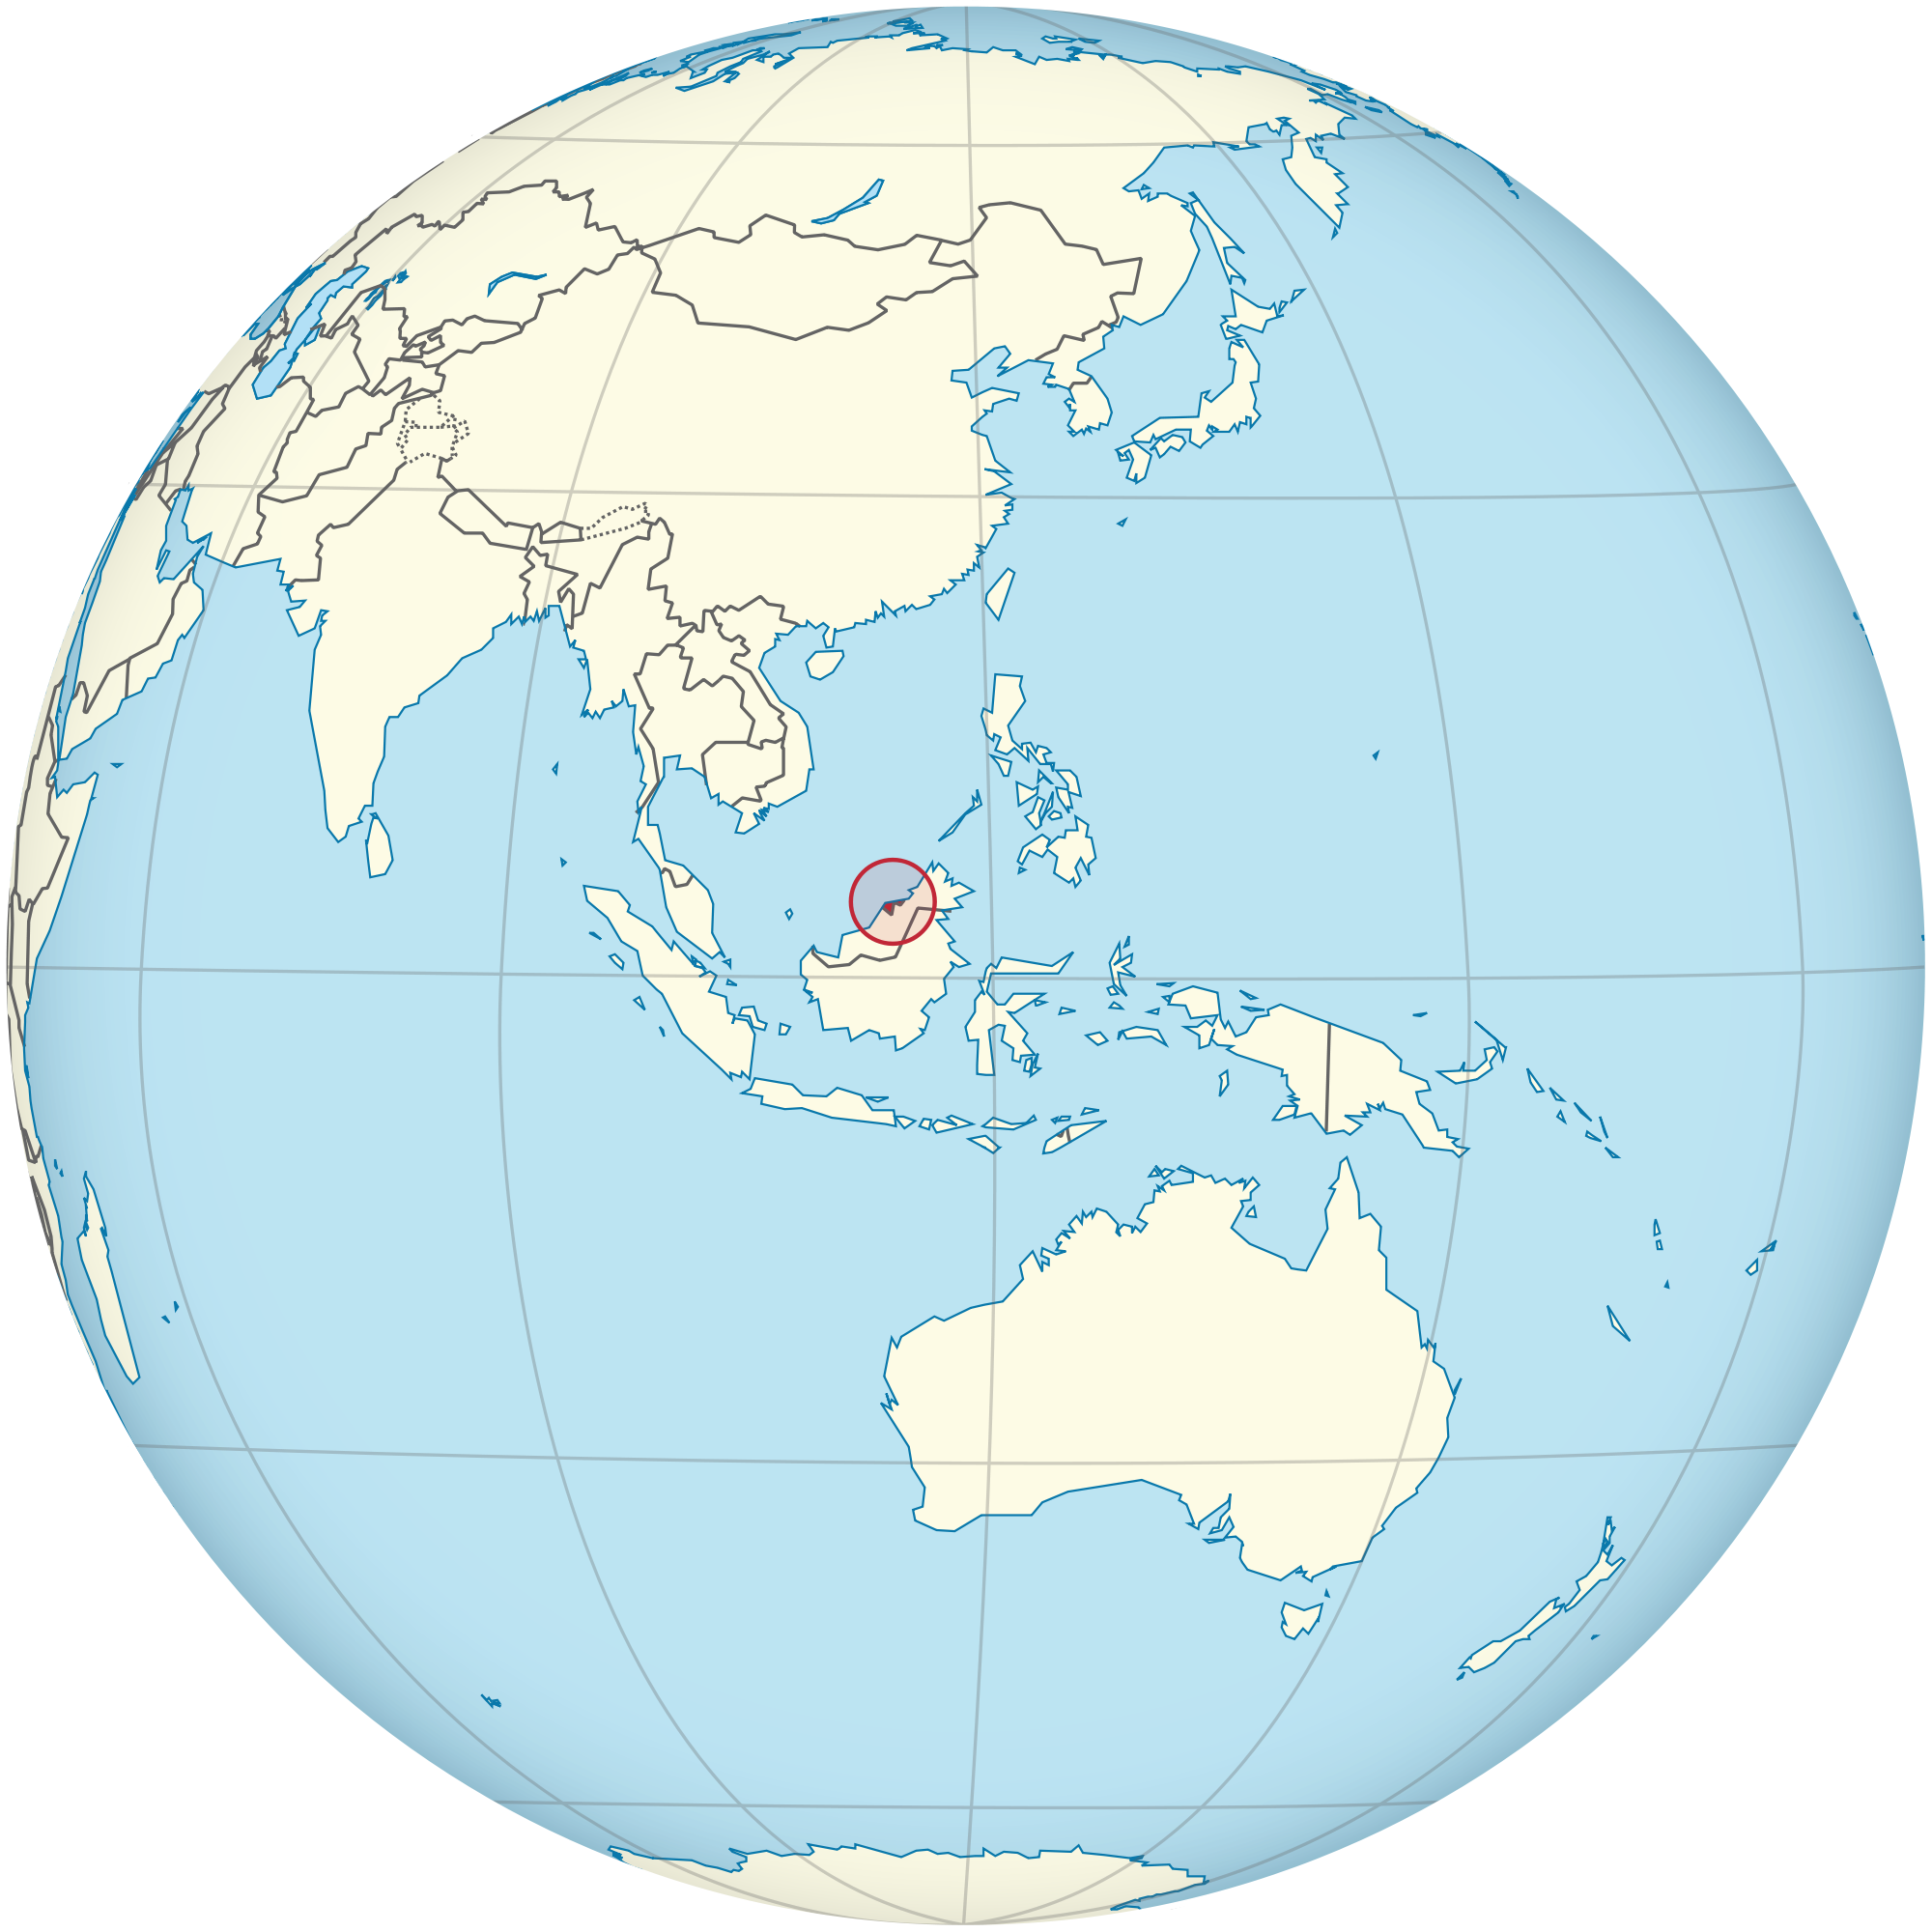 brunei location on world map Location Of The Brunei In The World Map brunei location on world map